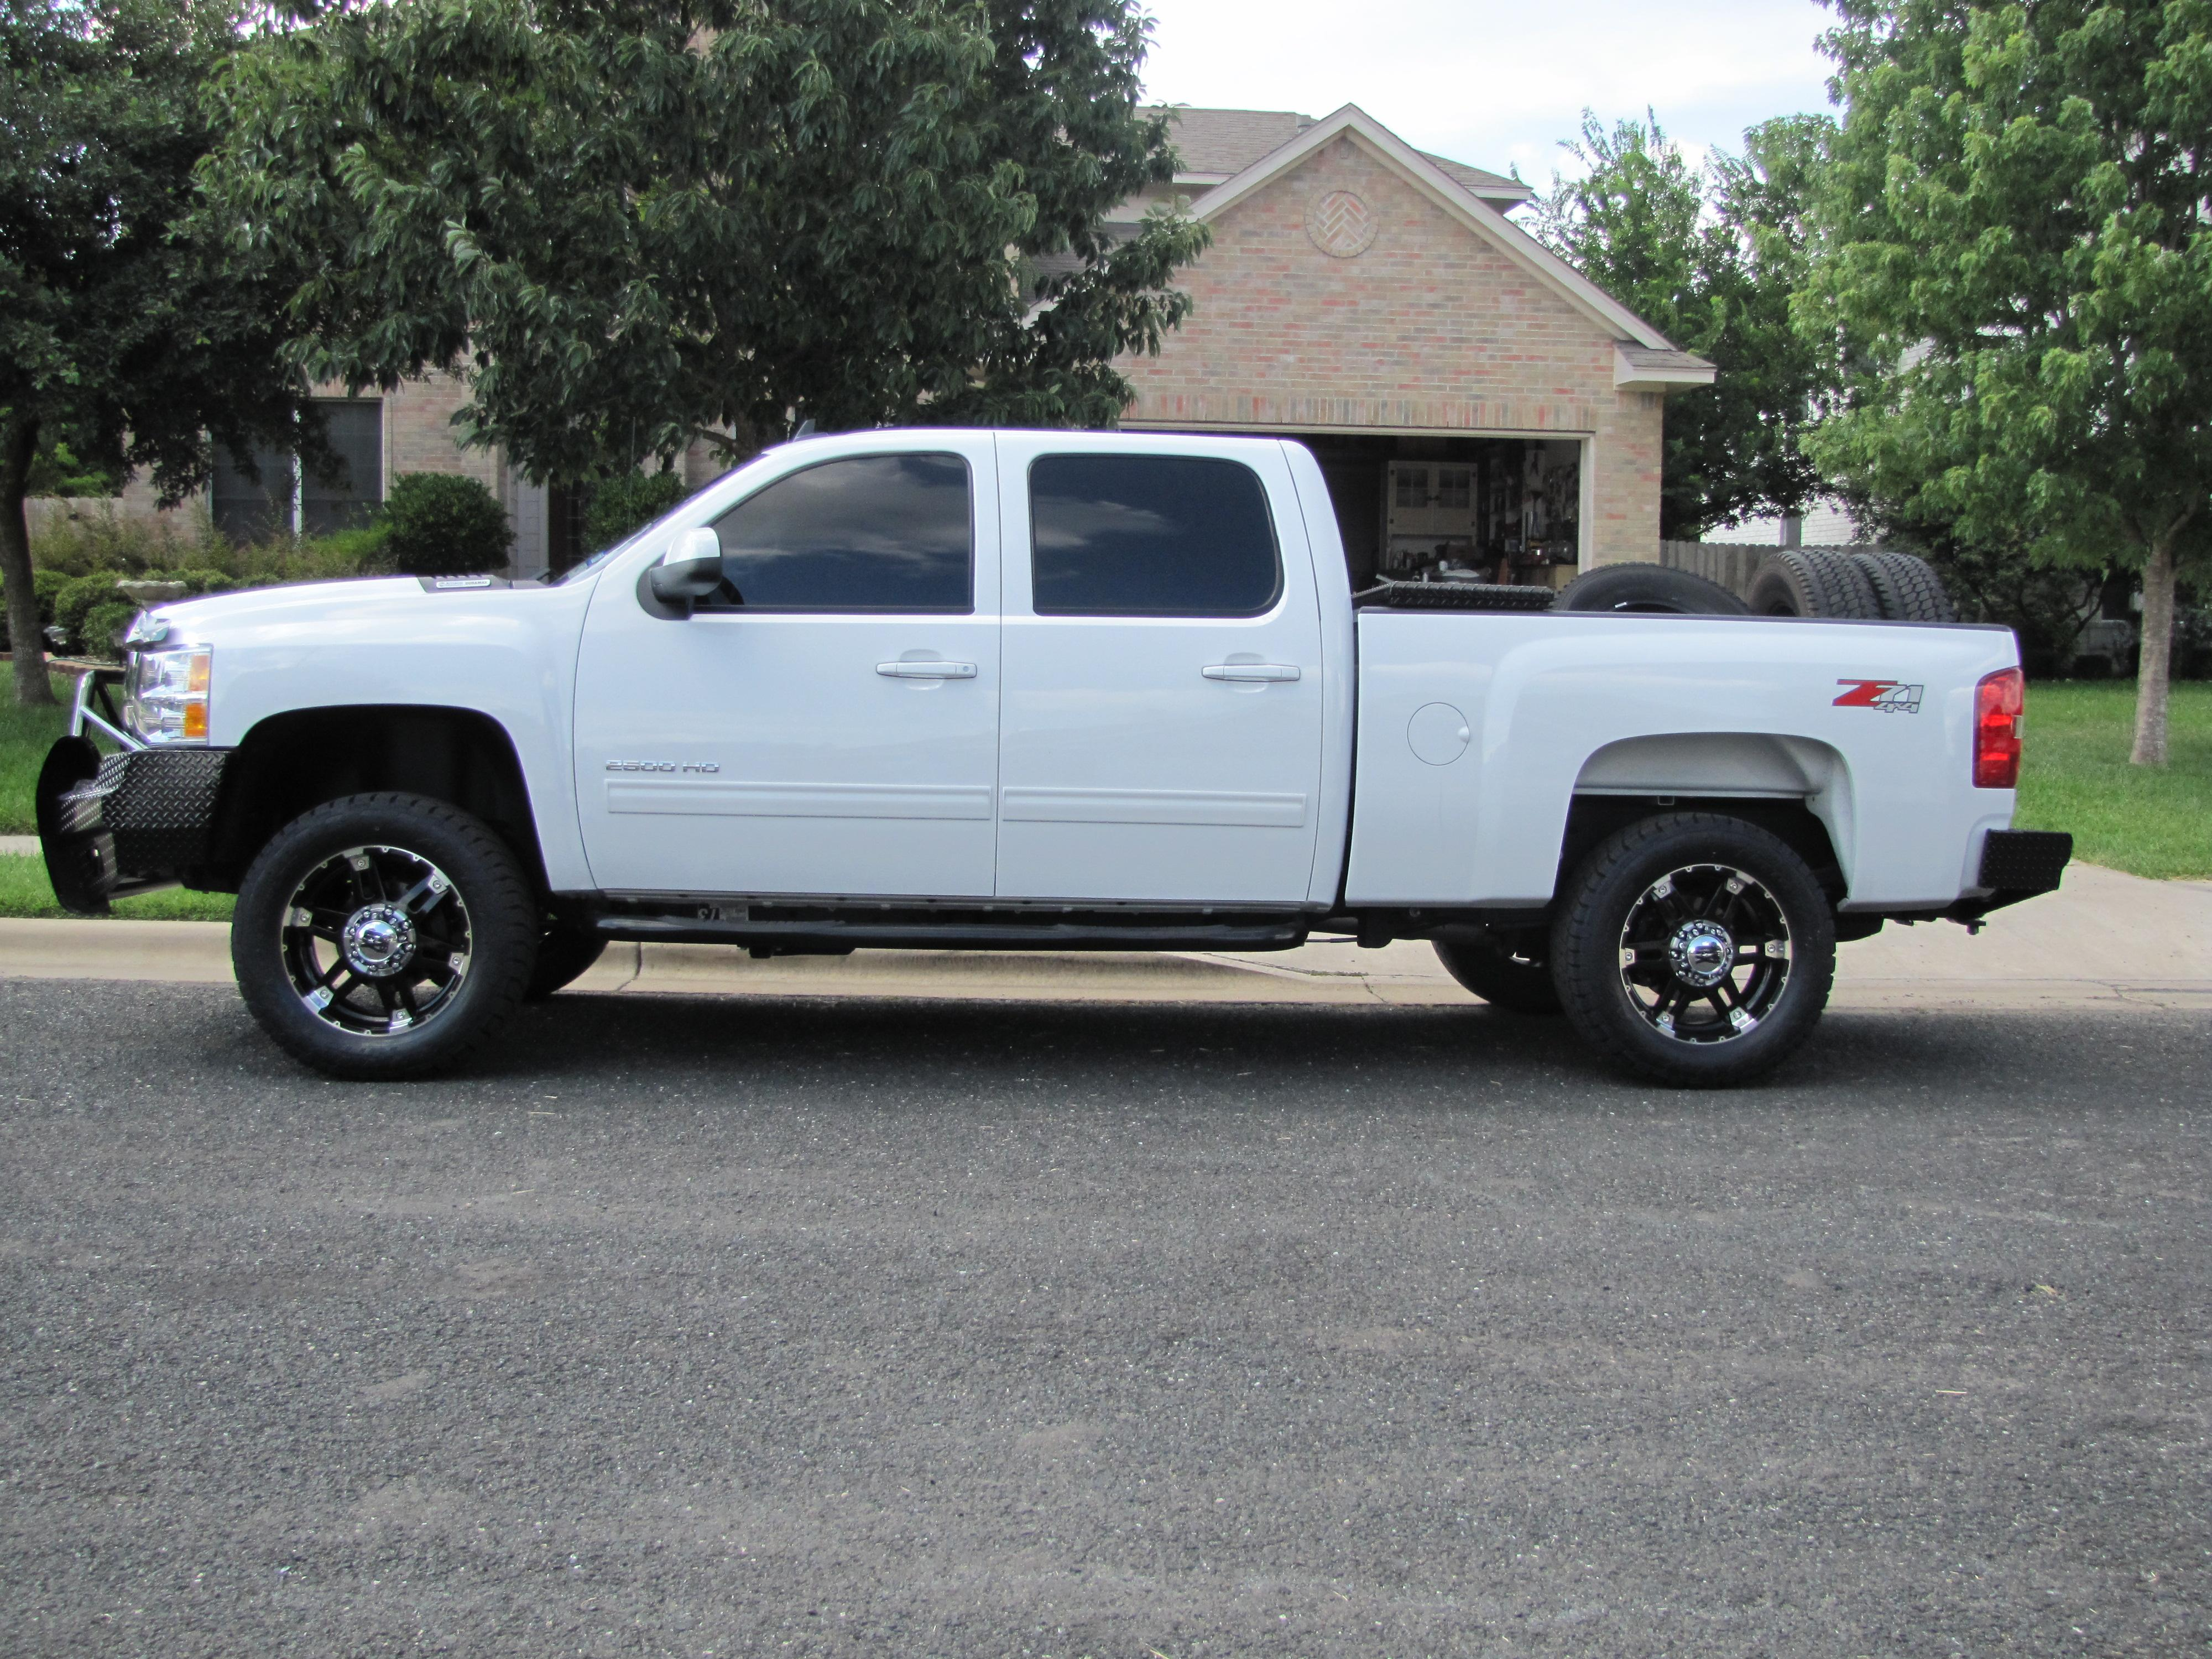 tundrak 2010 chevrolet silverado 2500 hd crew cab specs photos modification info at cardomain. Black Bedroom Furniture Sets. Home Design Ideas